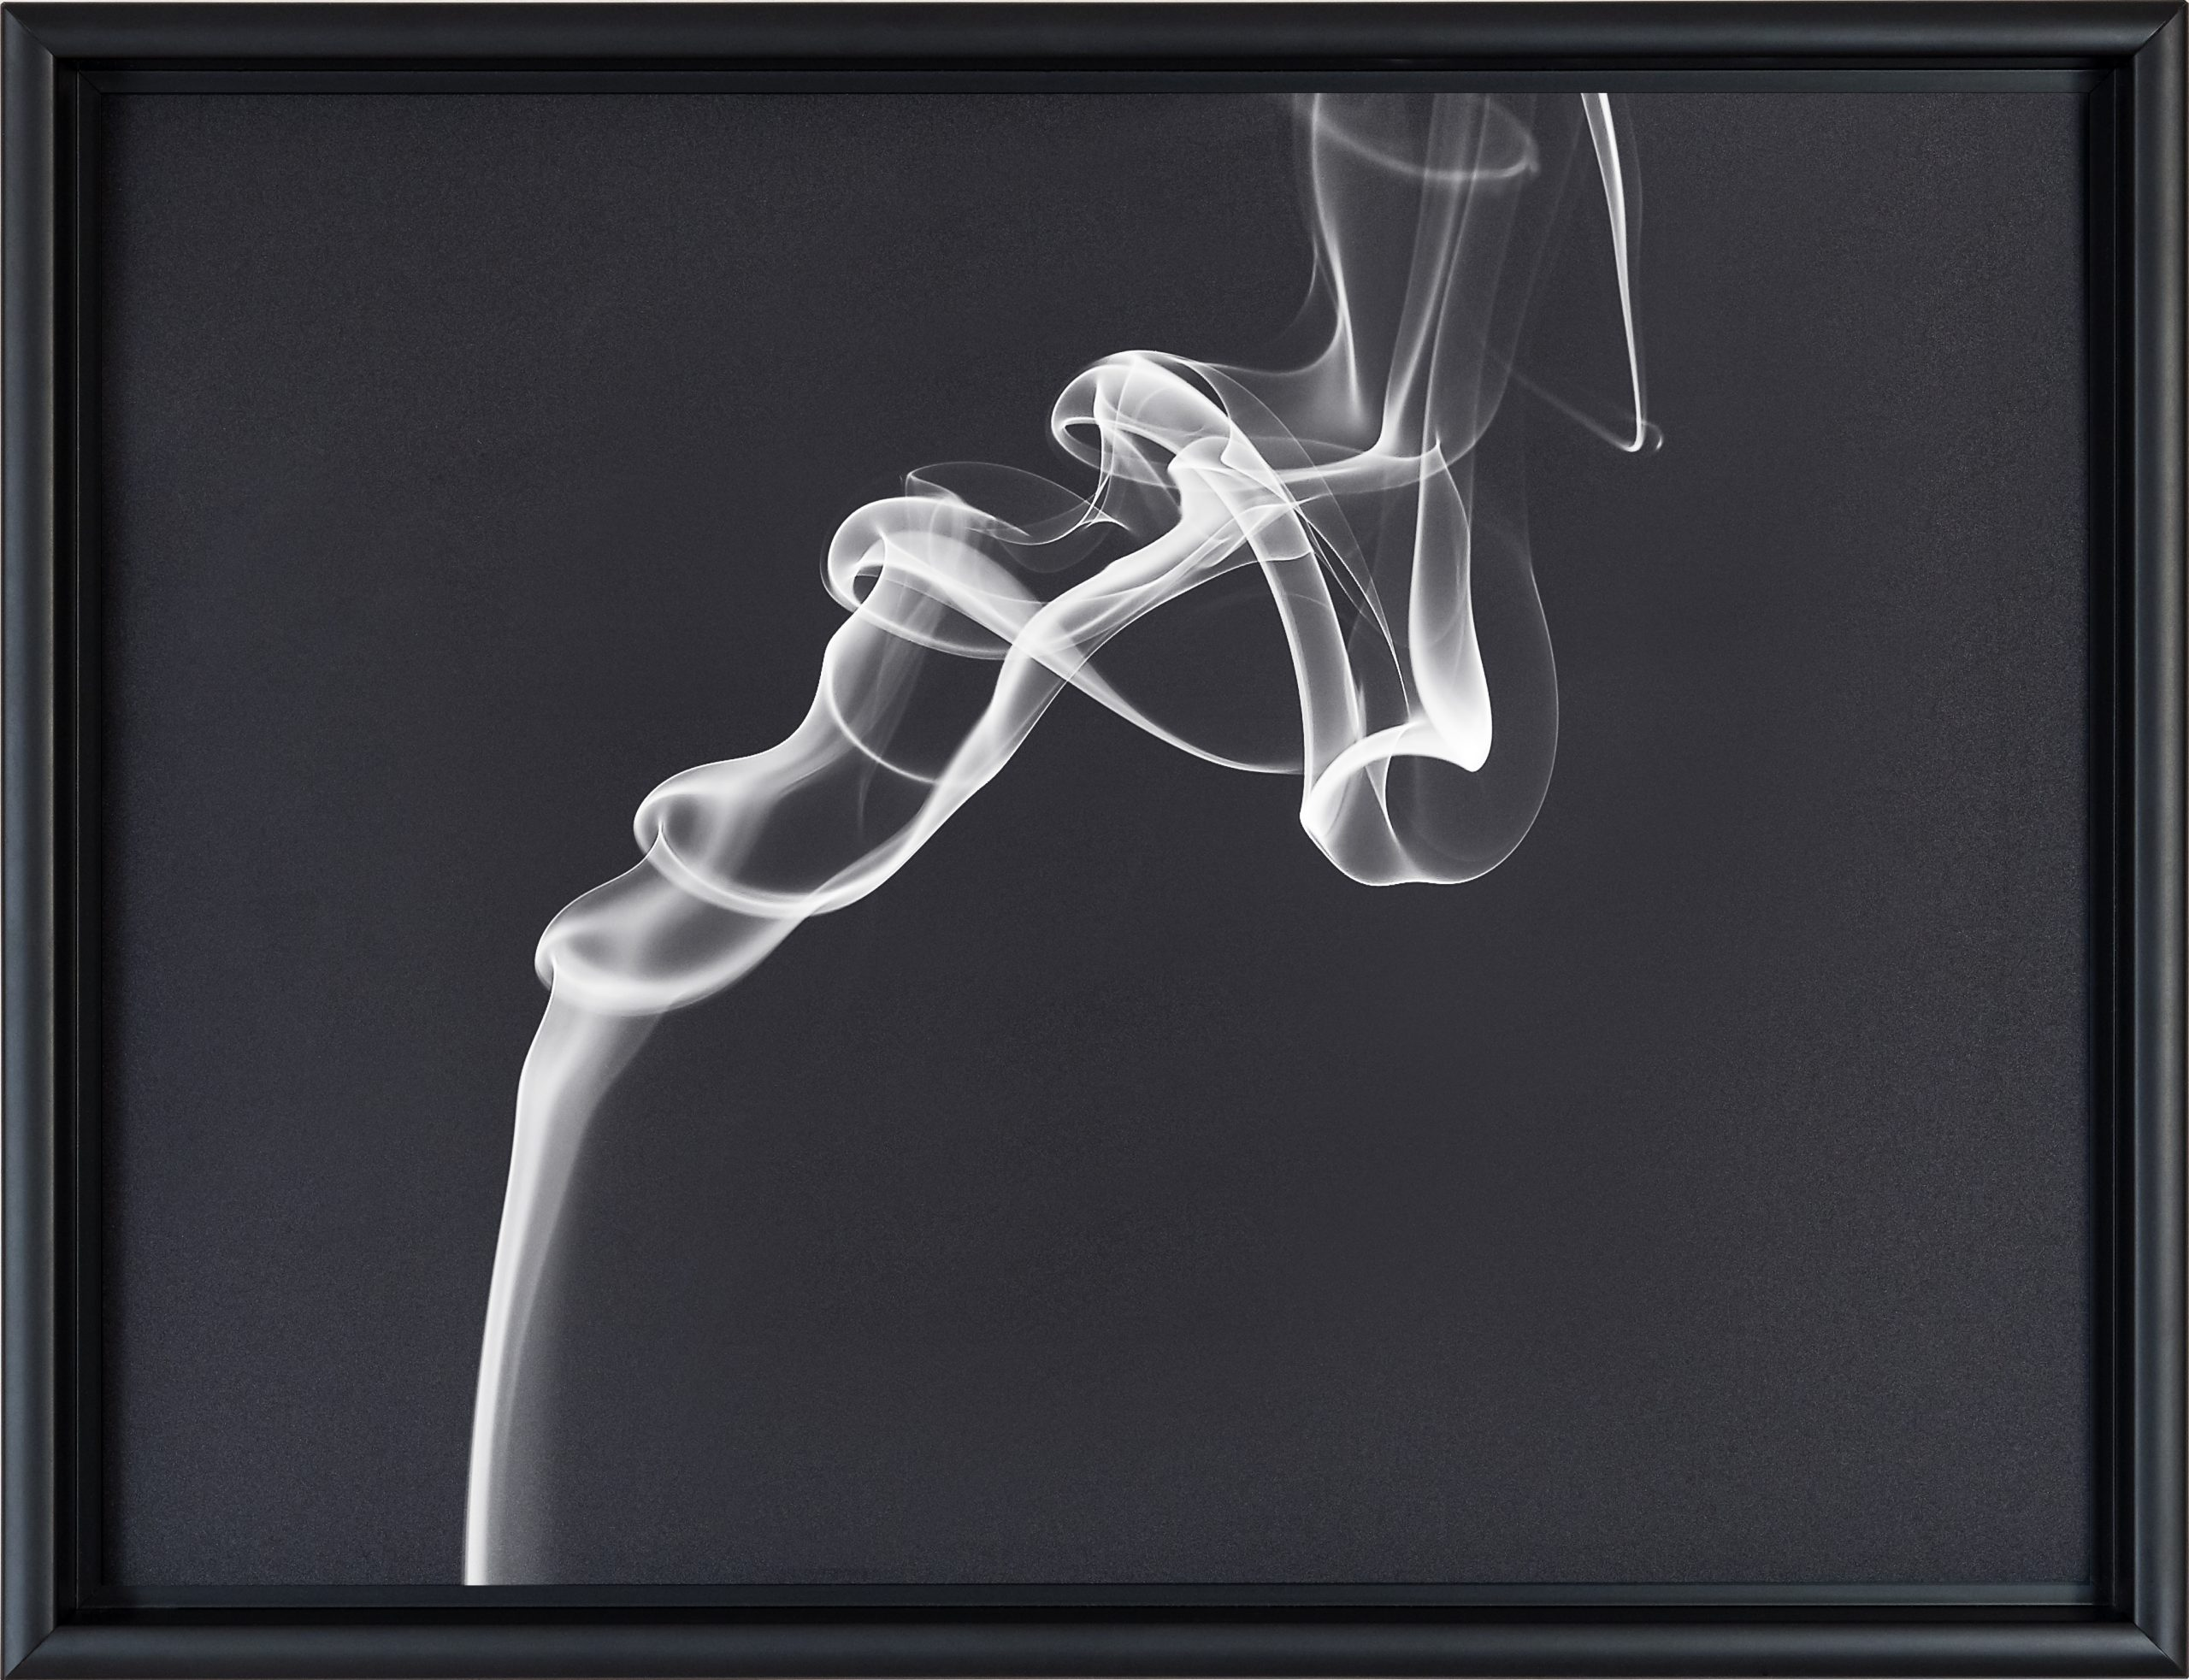 Smoking Games © Johann Perger photography Fotografie